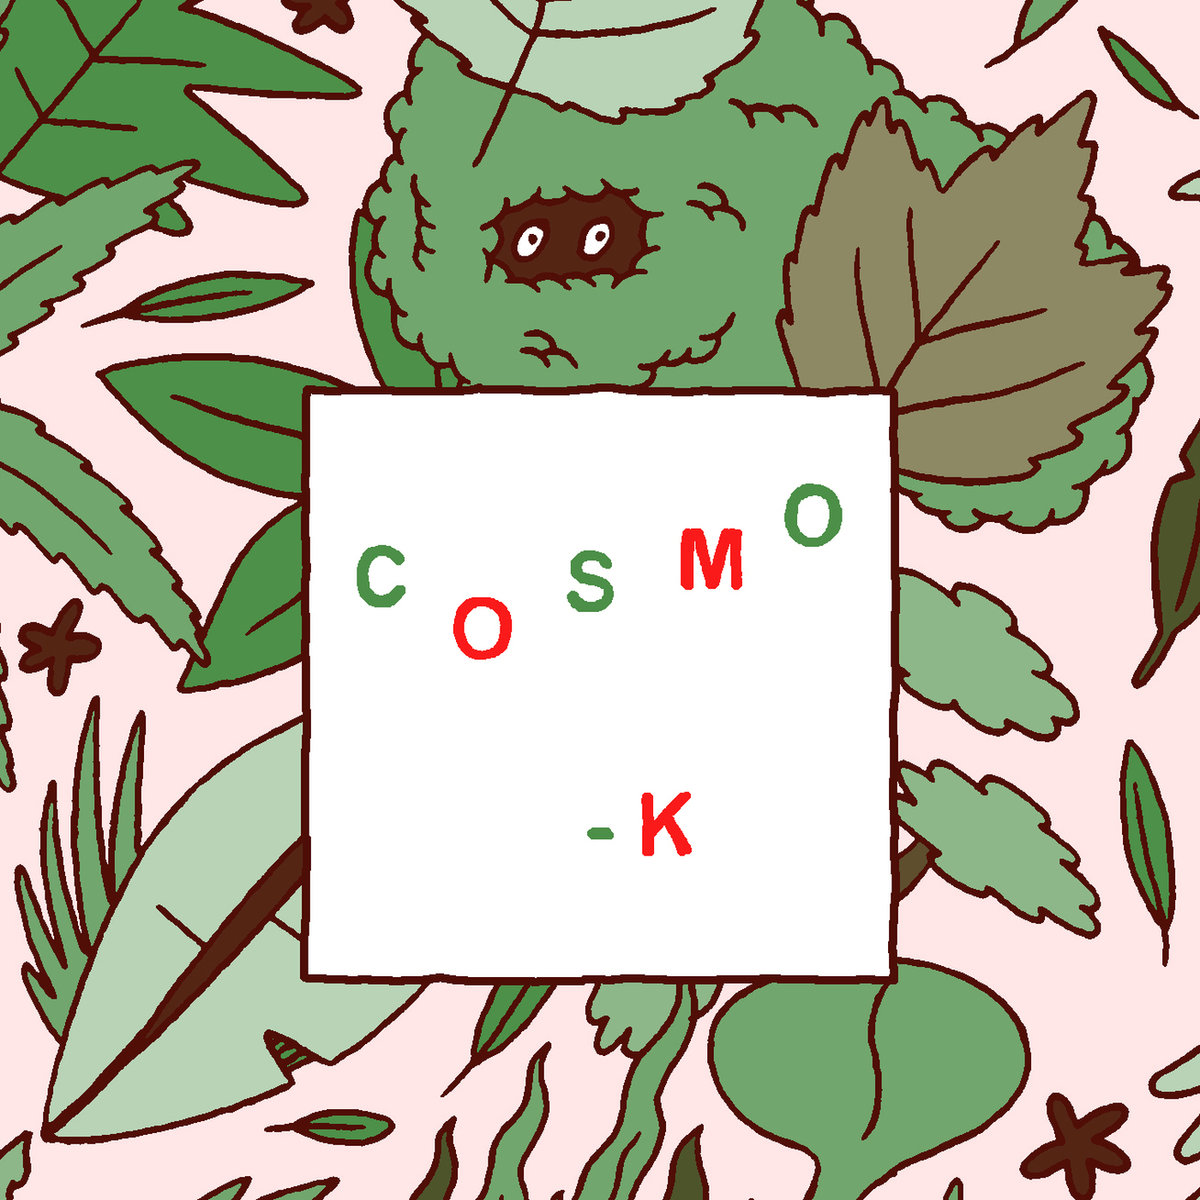 Cosmo K